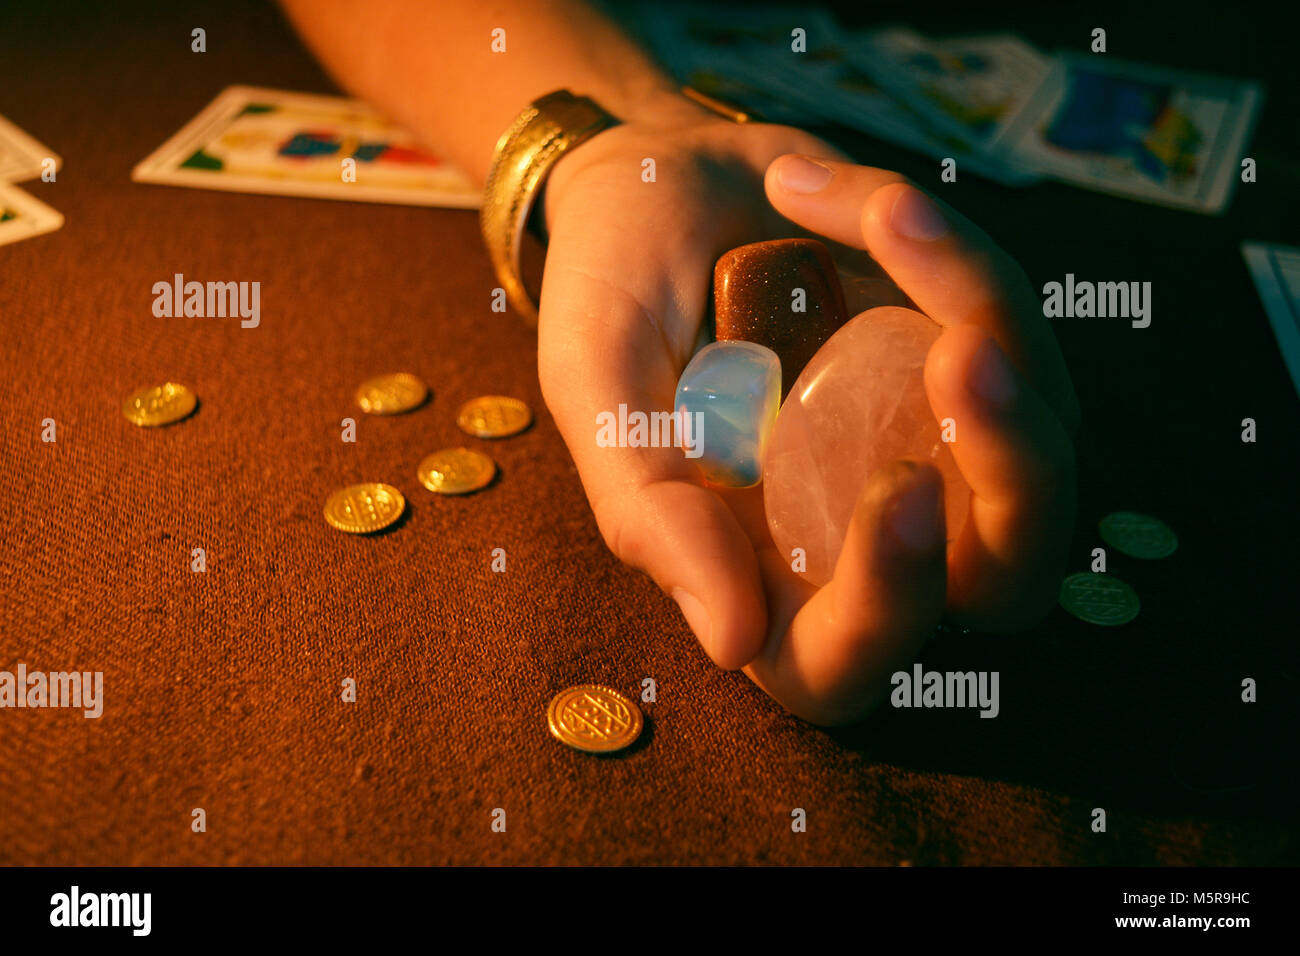 Holding crystals and gold on hand tarot table - Stock Image